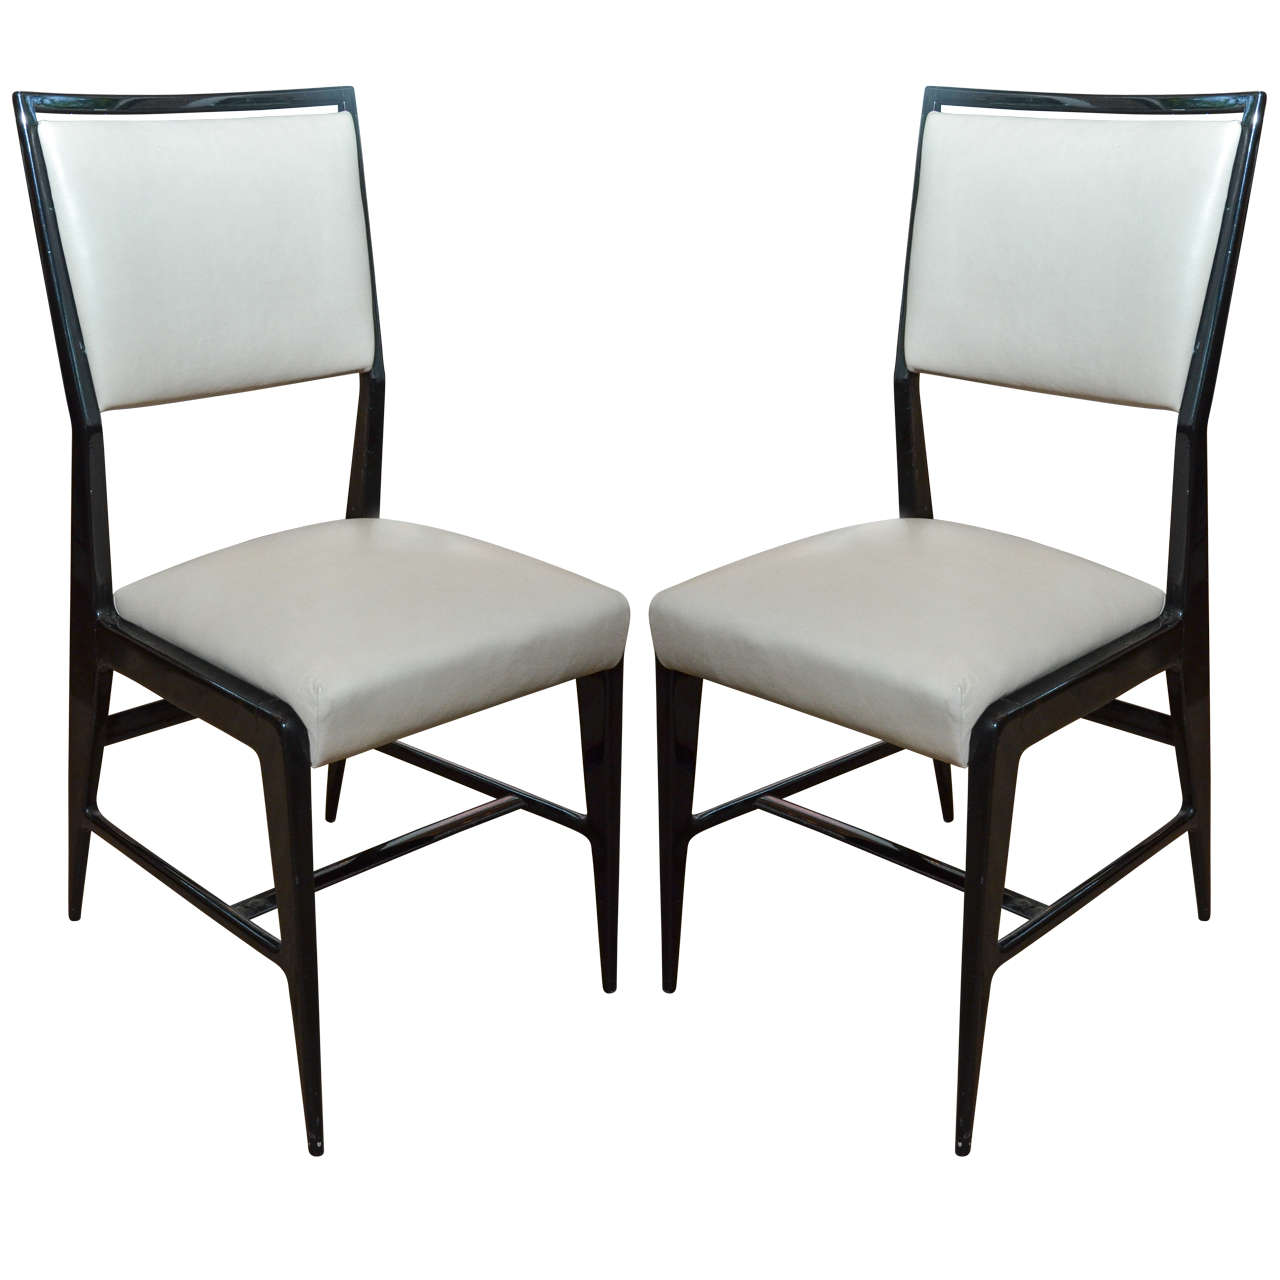 Pair of Occasional Chairs Attributed to Gio Ponti 1